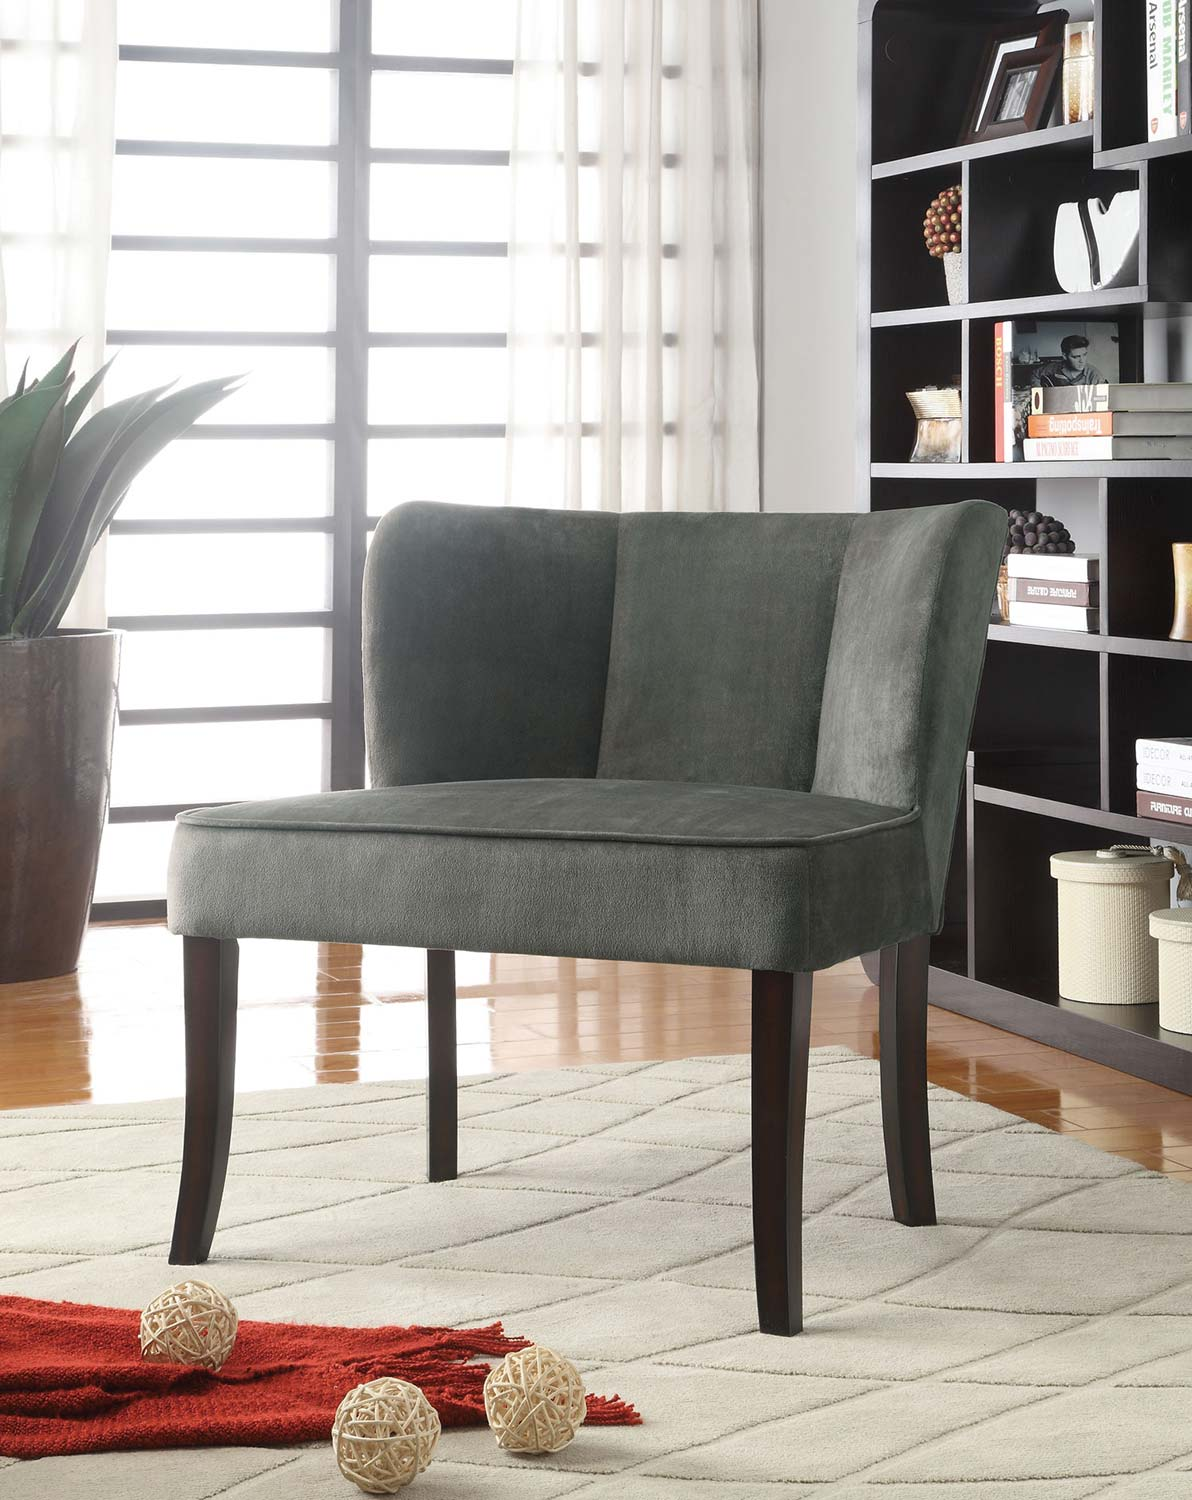 Coaster 902150 Accent Chair - Charcoal